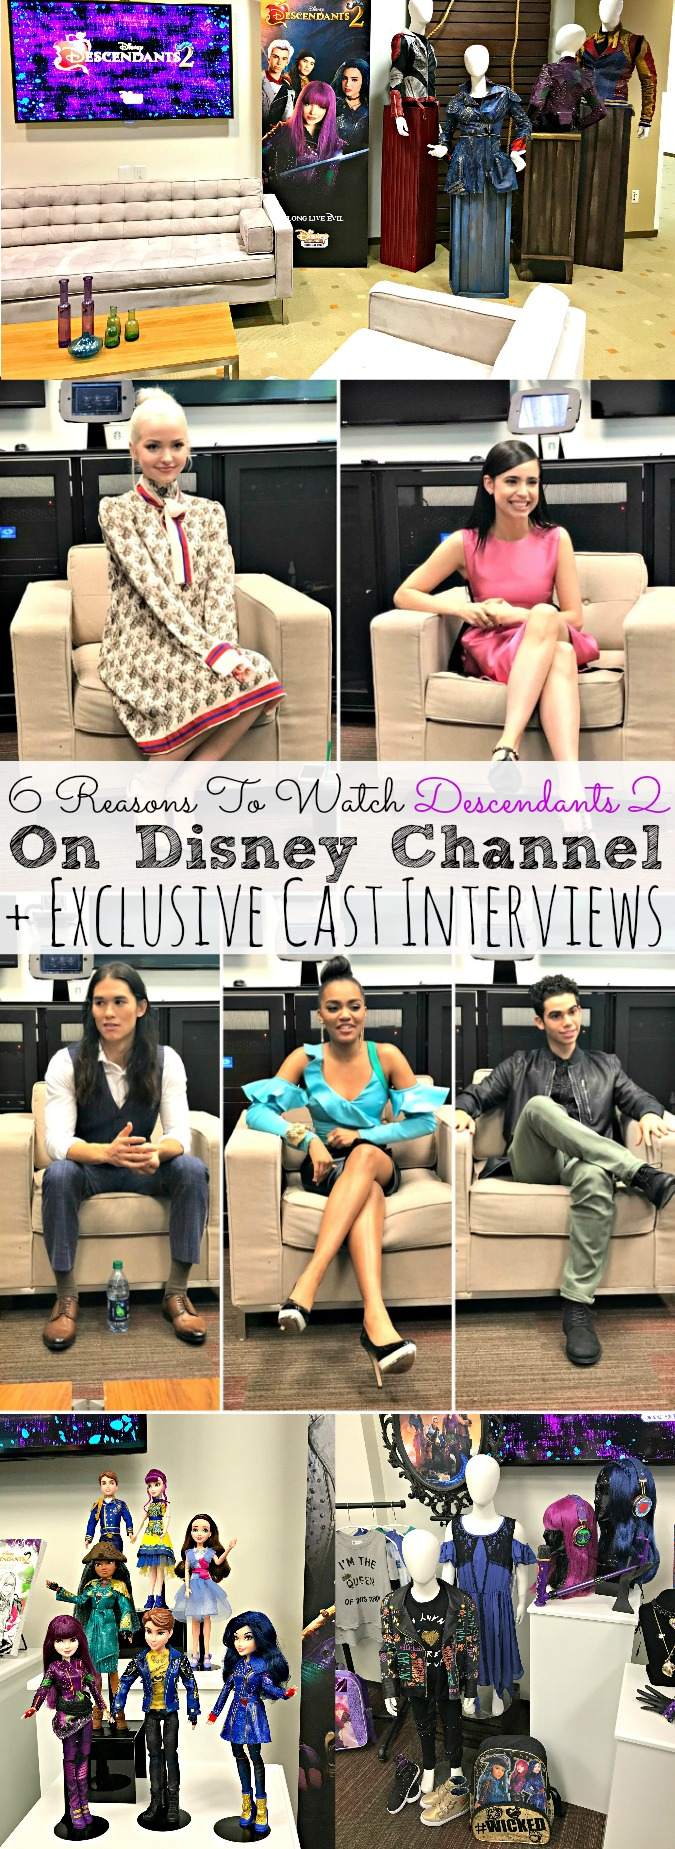 6 Reasons To Watch Descendants 2 and Exclusive Cast Interviews